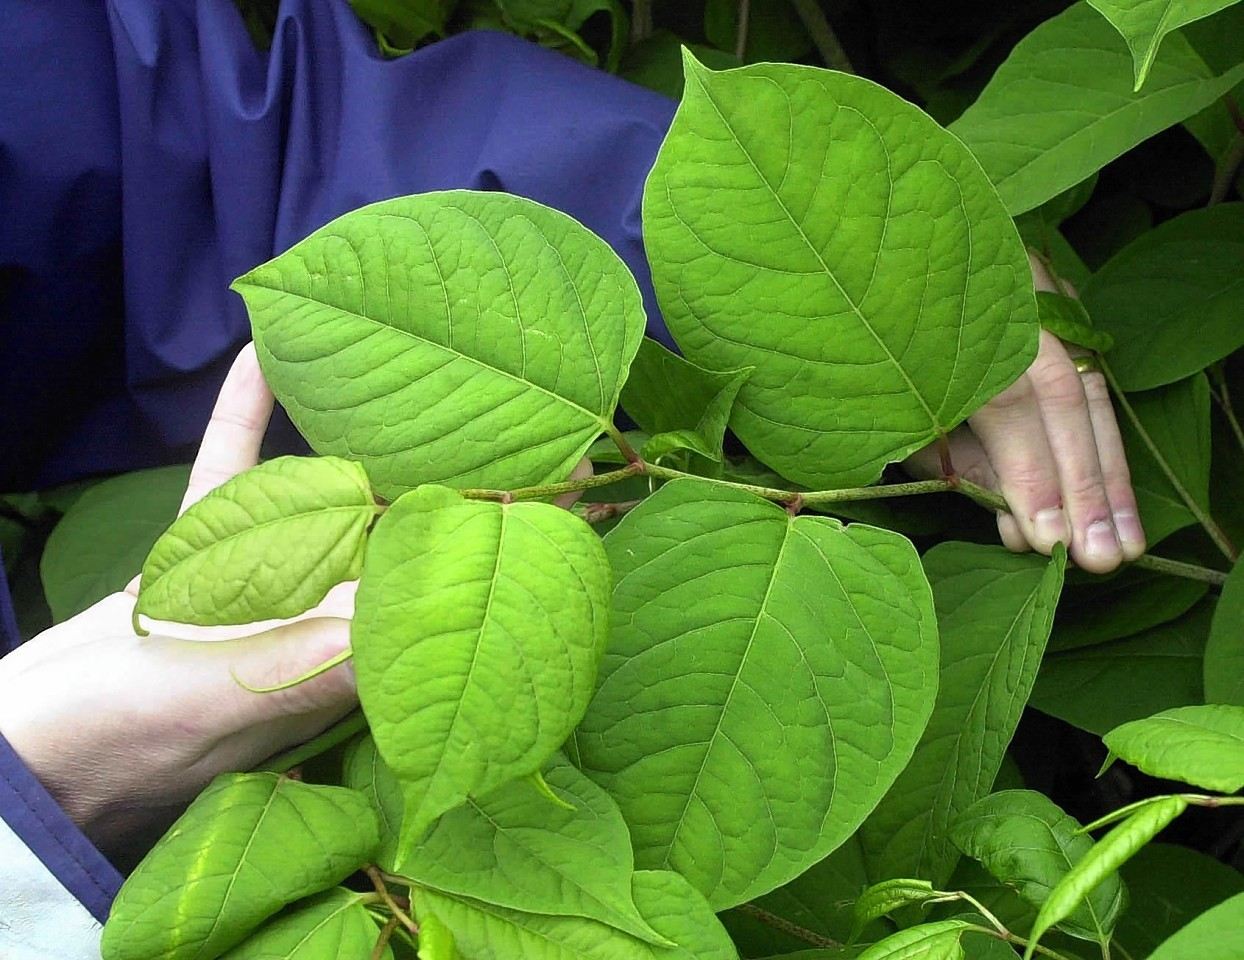 Japanese Knotweed is one such non-native invasive species which is threatening important habitats